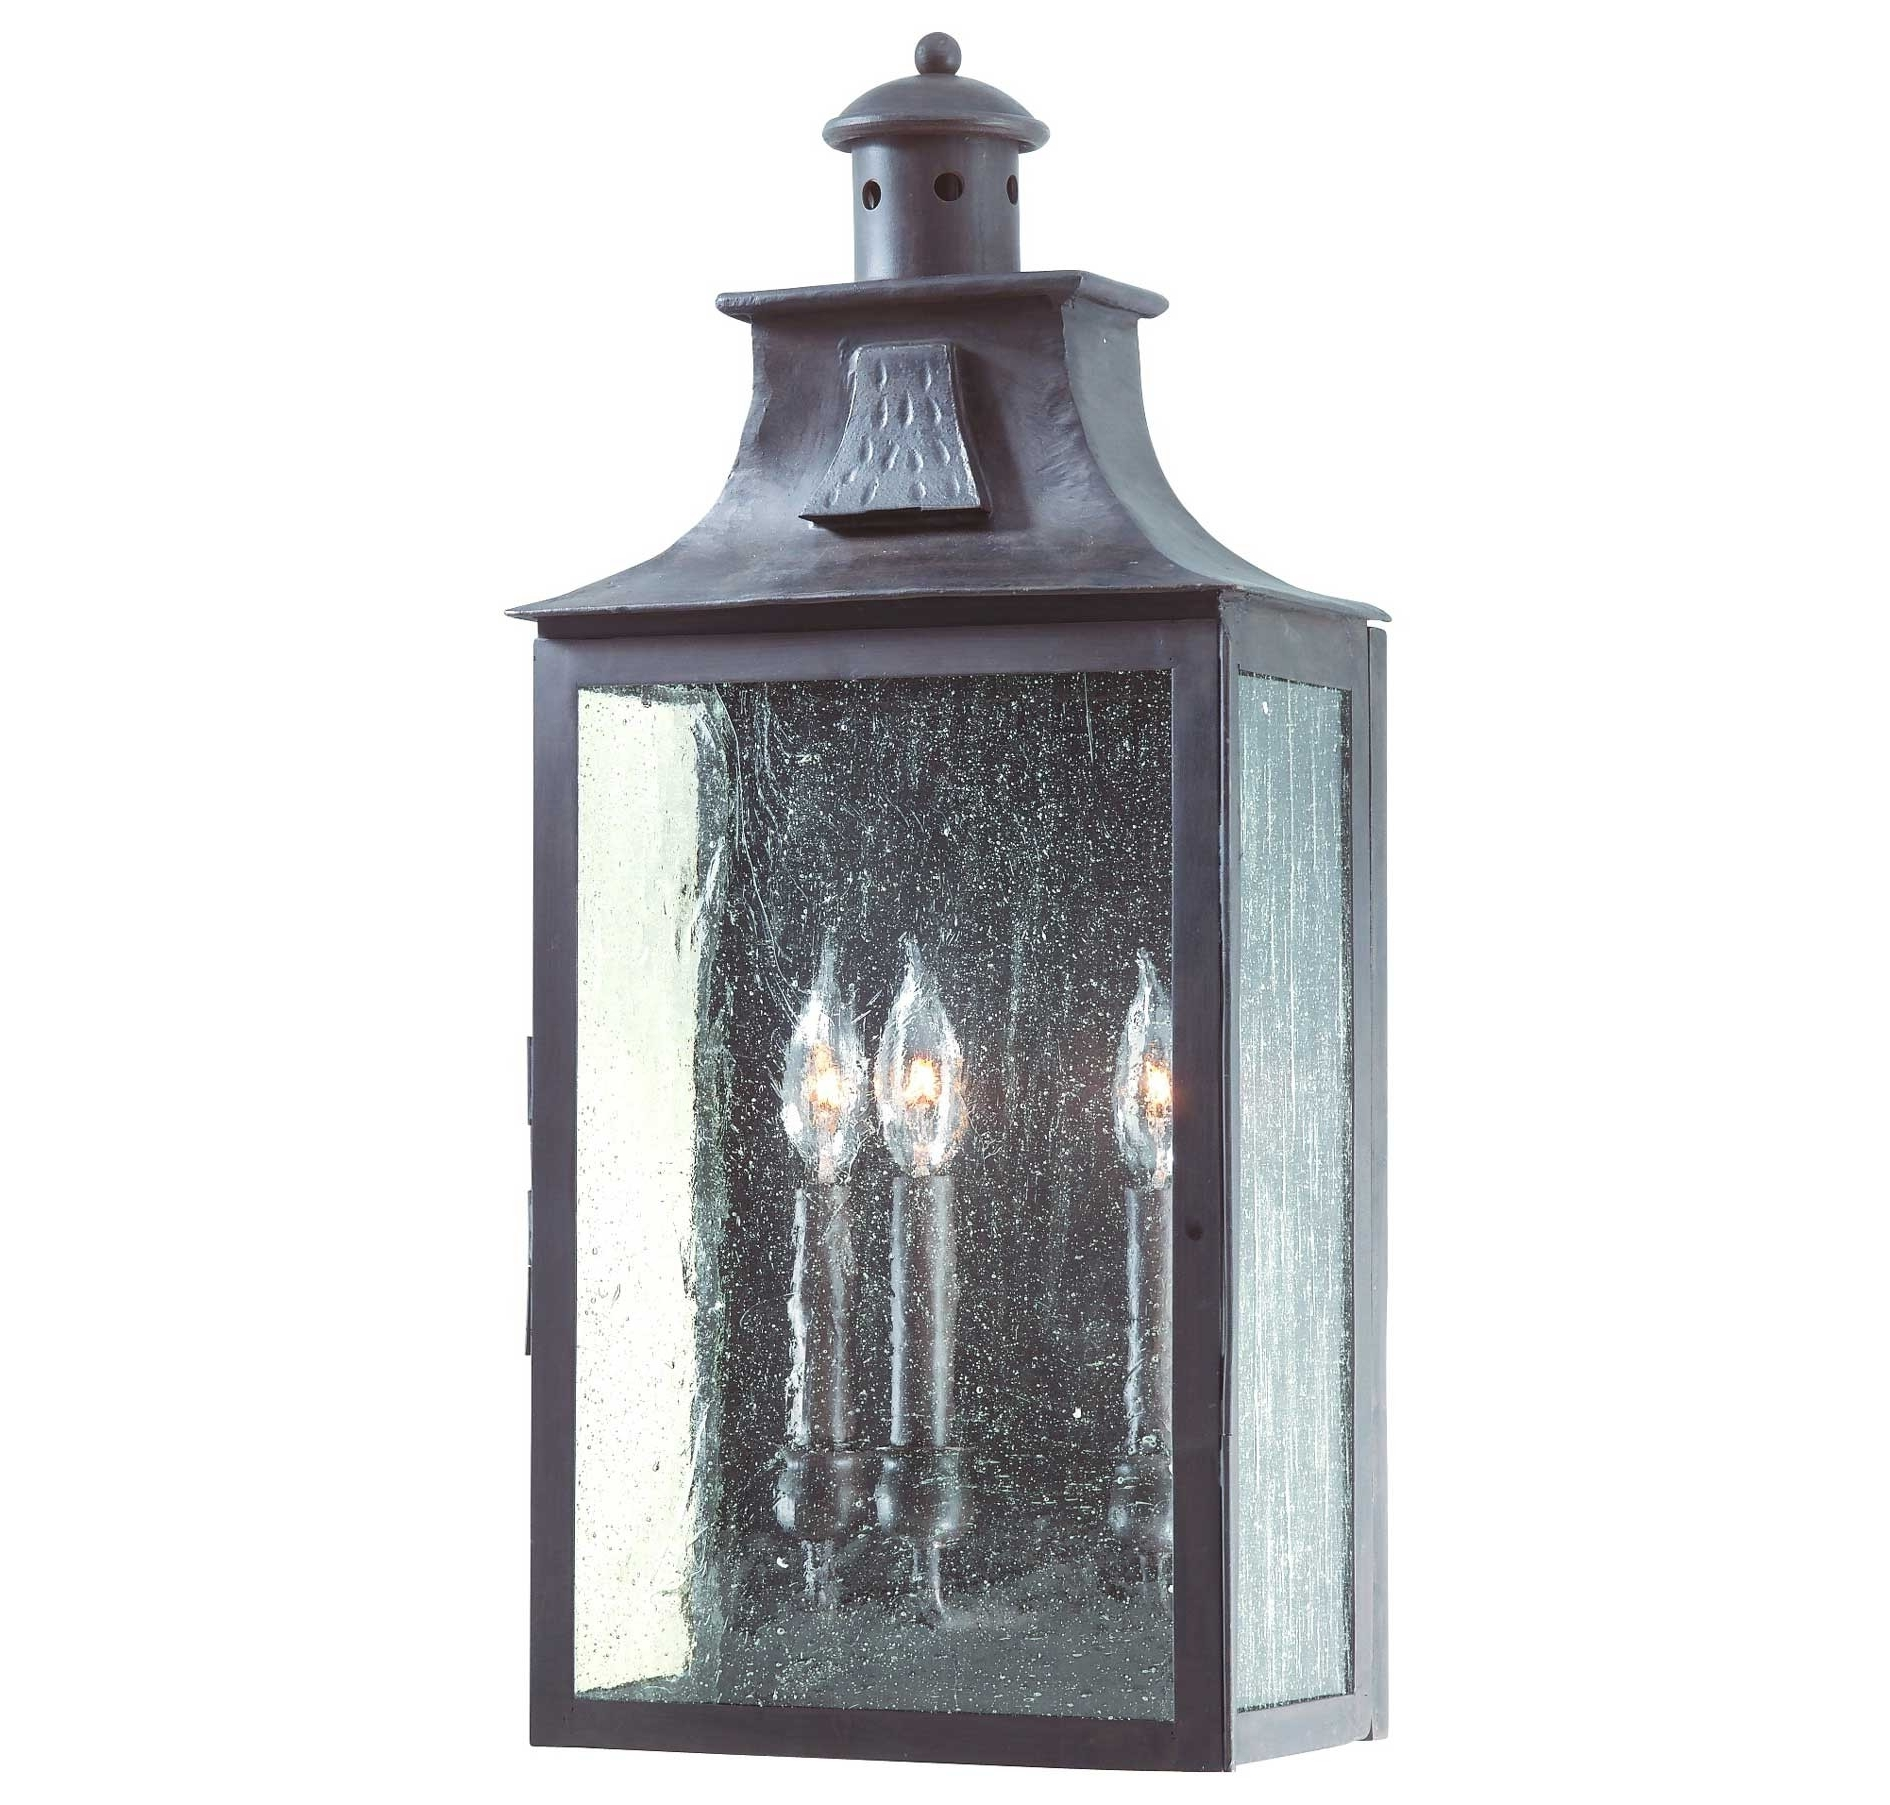 Troy Lighting Outdoor Wall Sconces Inside Famous Troy Lighting Bcd9009obz Newton 3 Light Wall Pocket Lantern In (View 7 of 20)